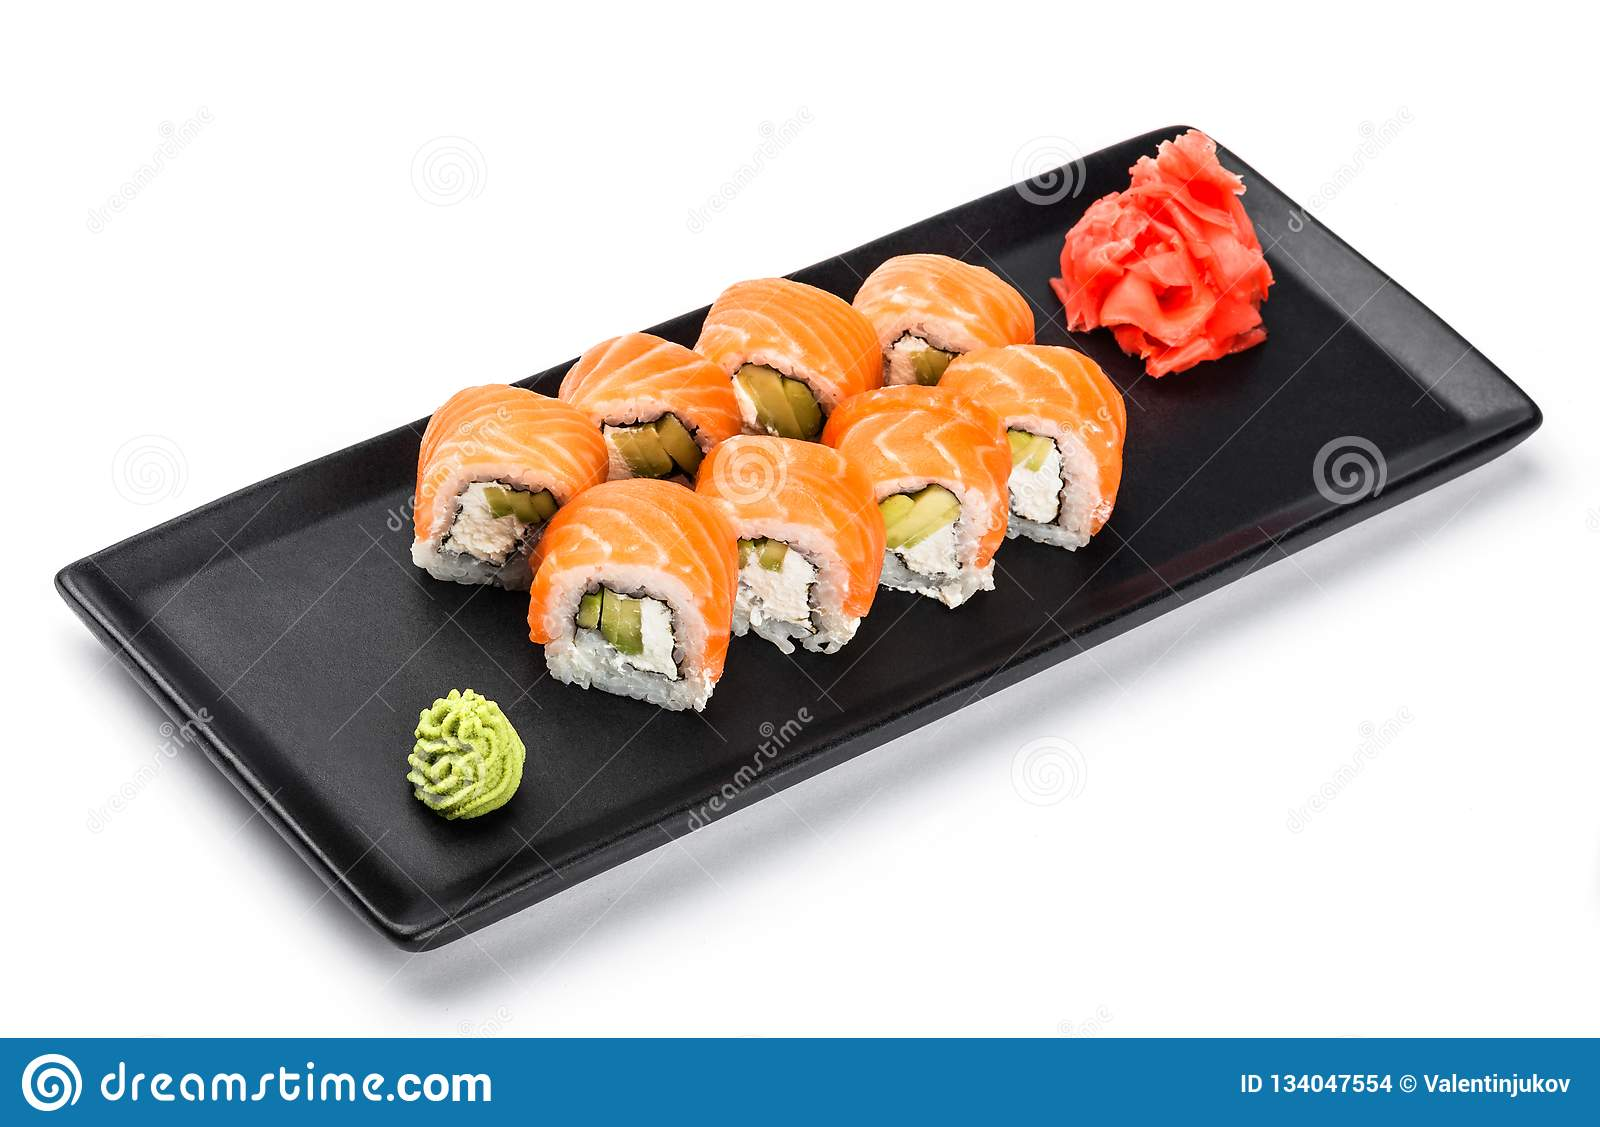 Sushi Roll - Maki Sushi made of salmon, avocado and cream cheese on black plate isolated over white background.